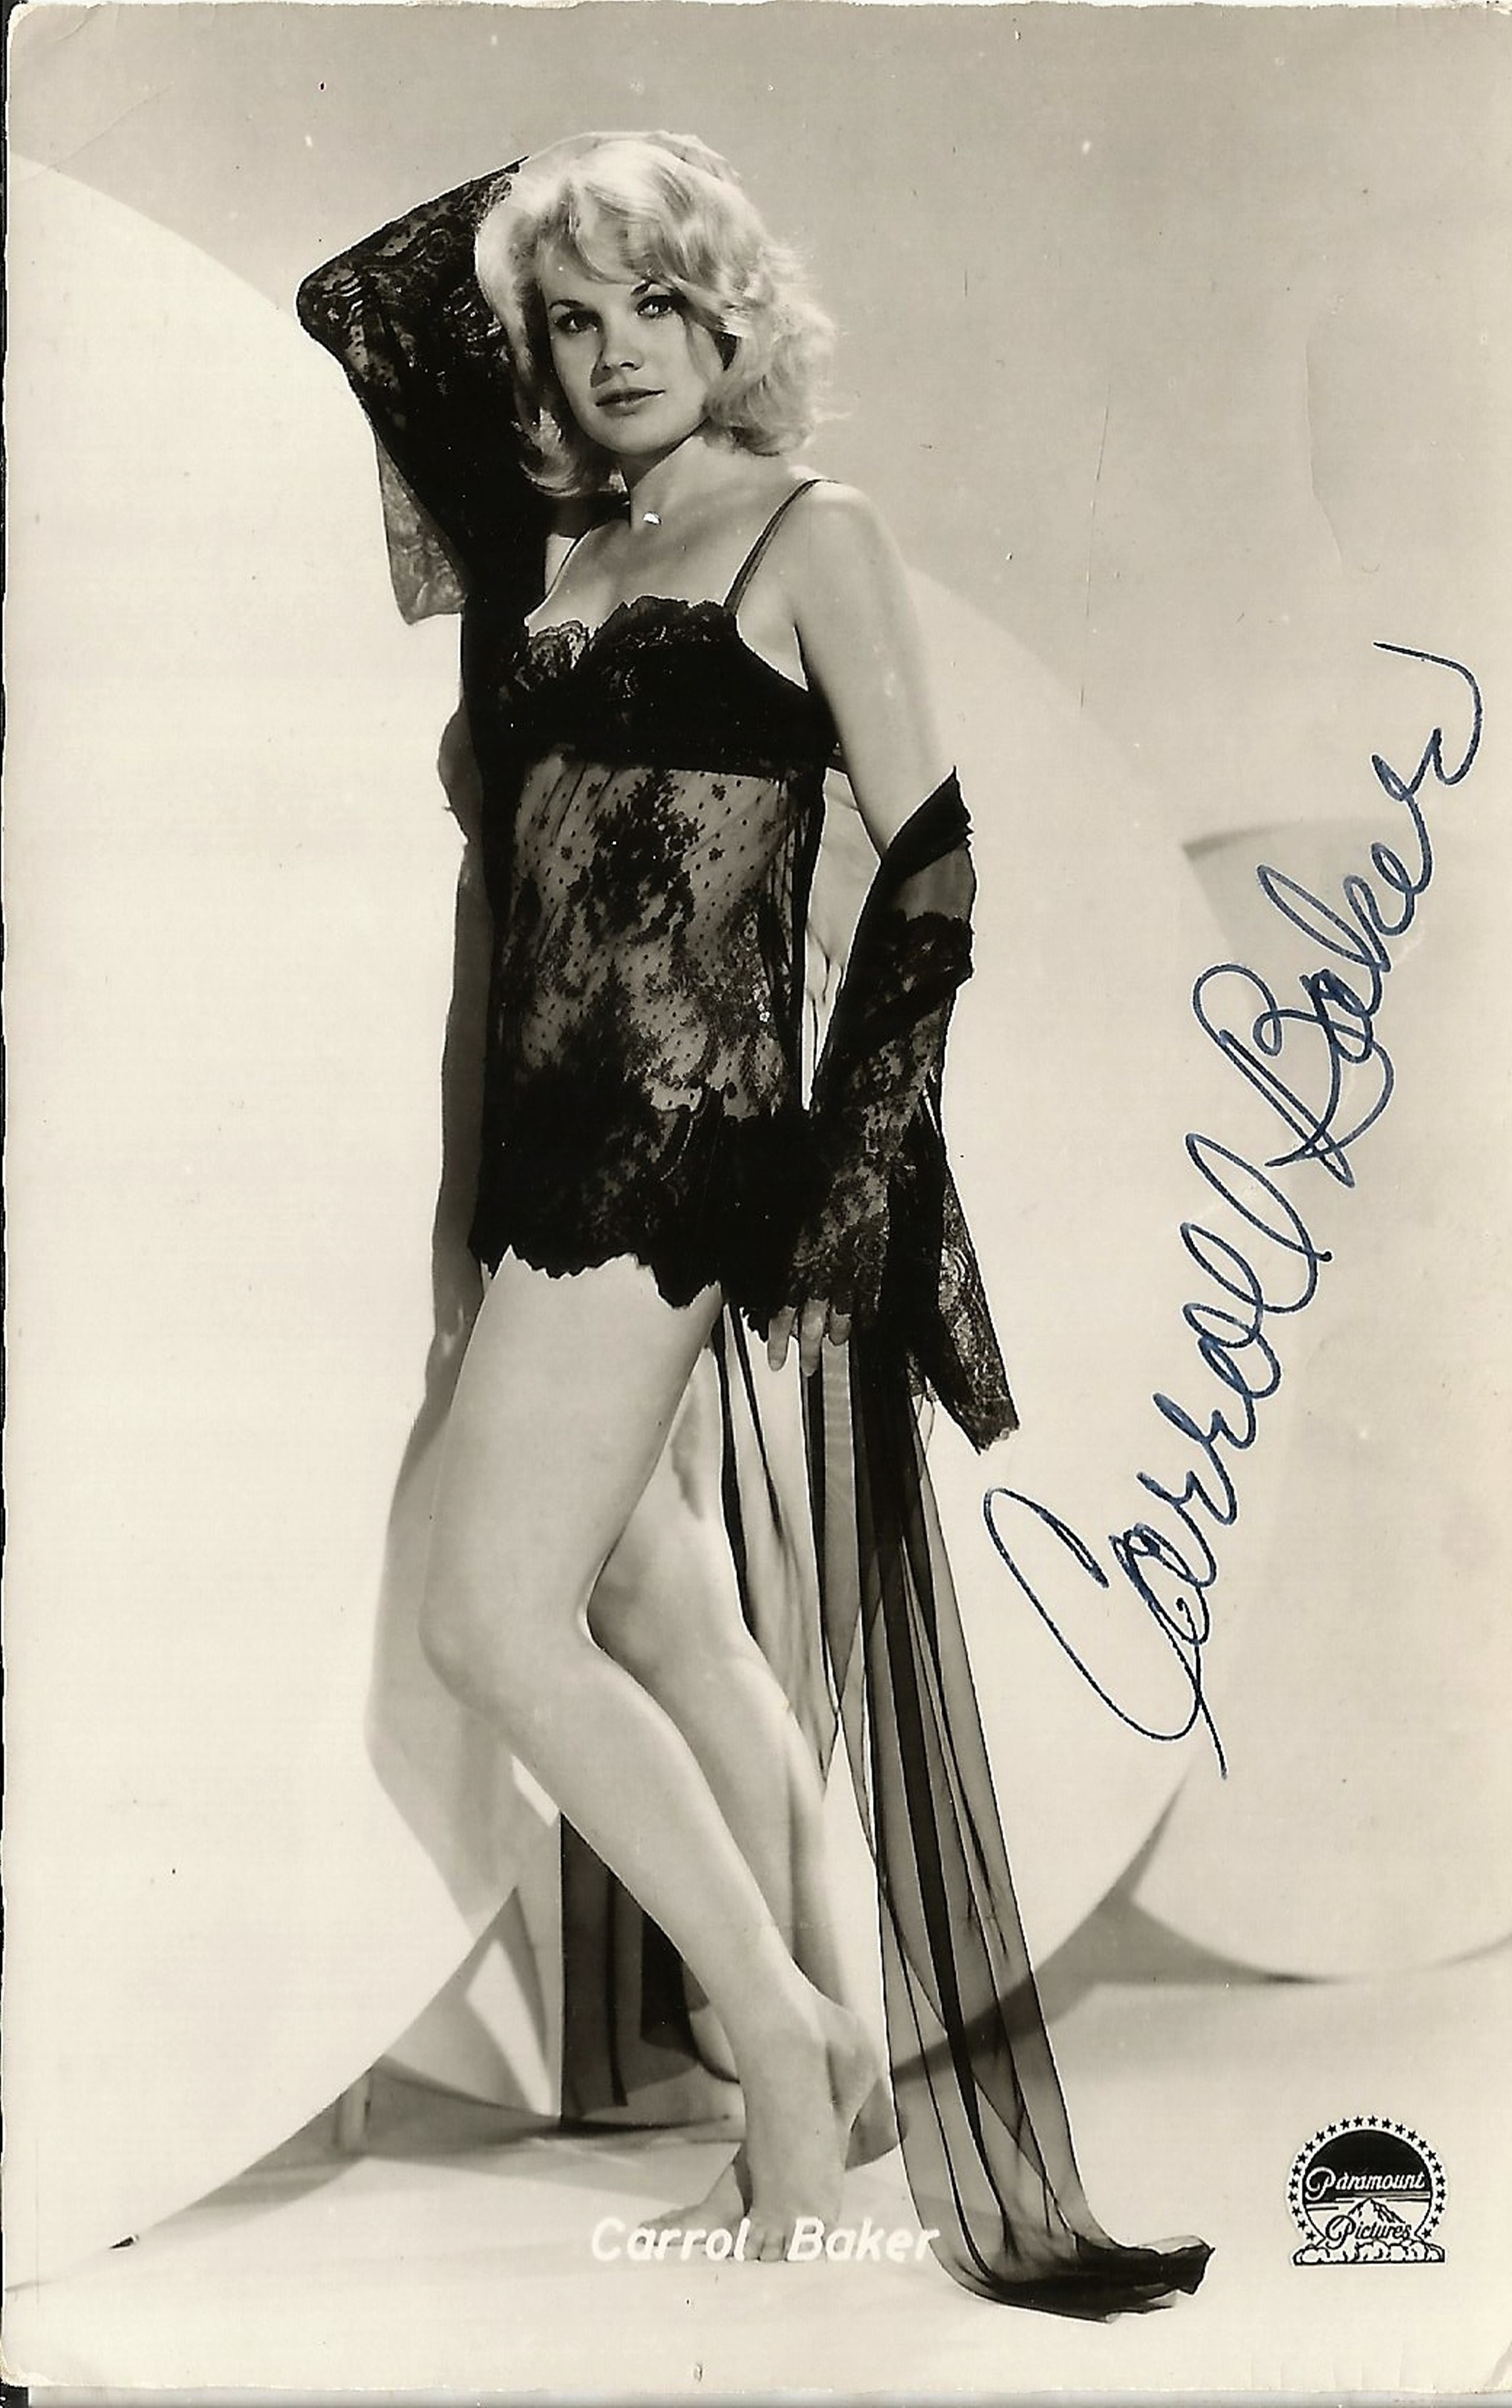 Carroll Baker signed 5x3 black and white photo. Good condition. All autographs come with a